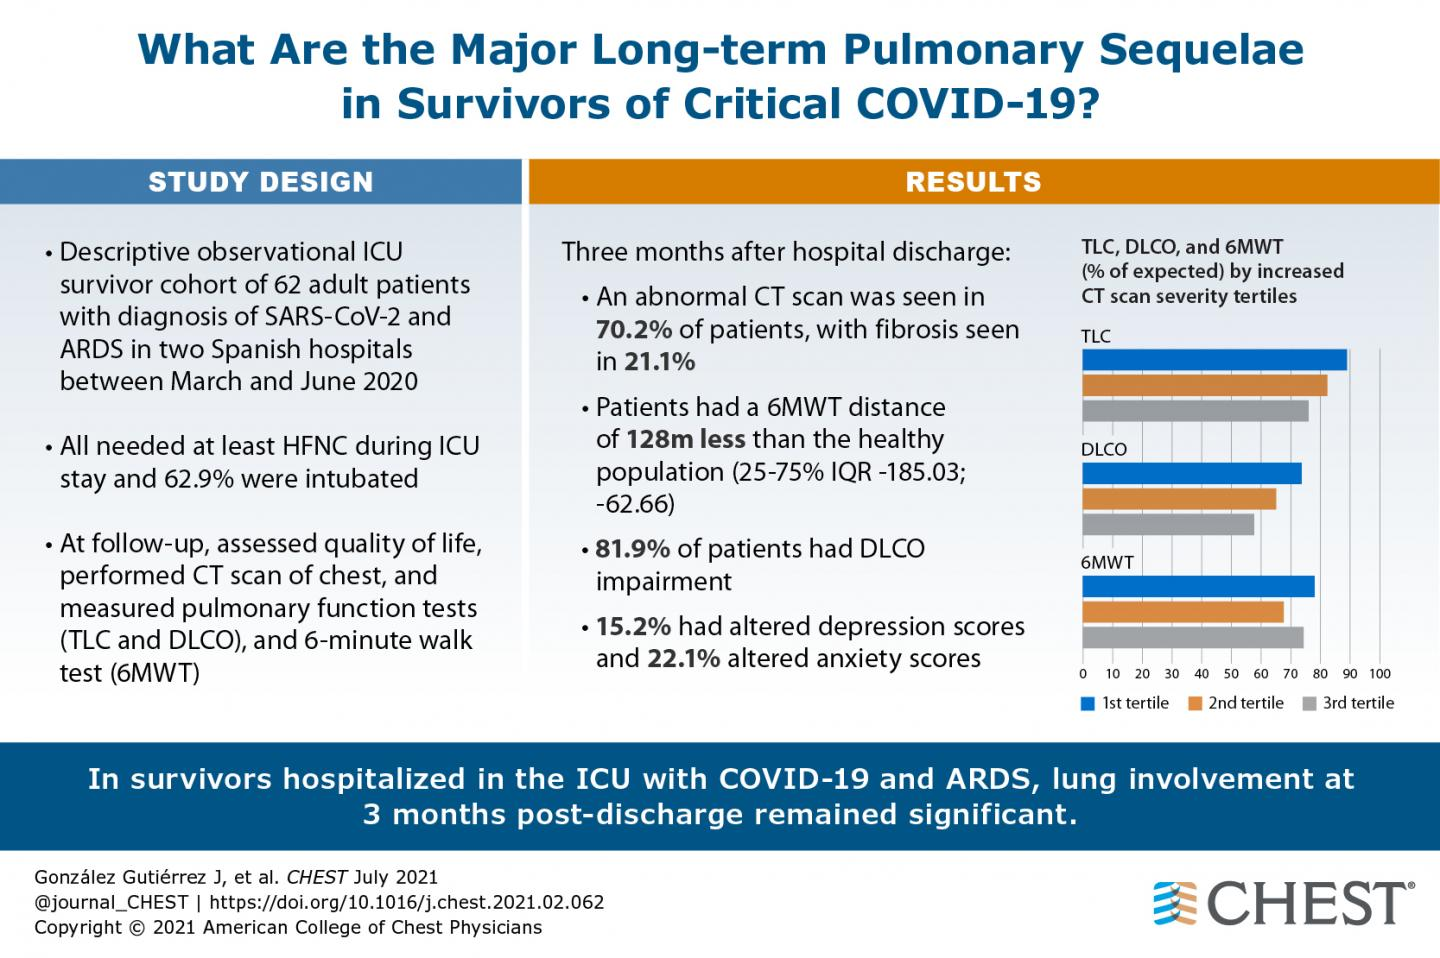 What are the major long-term pulmonary sequelae in survivors of critical COVID-19?